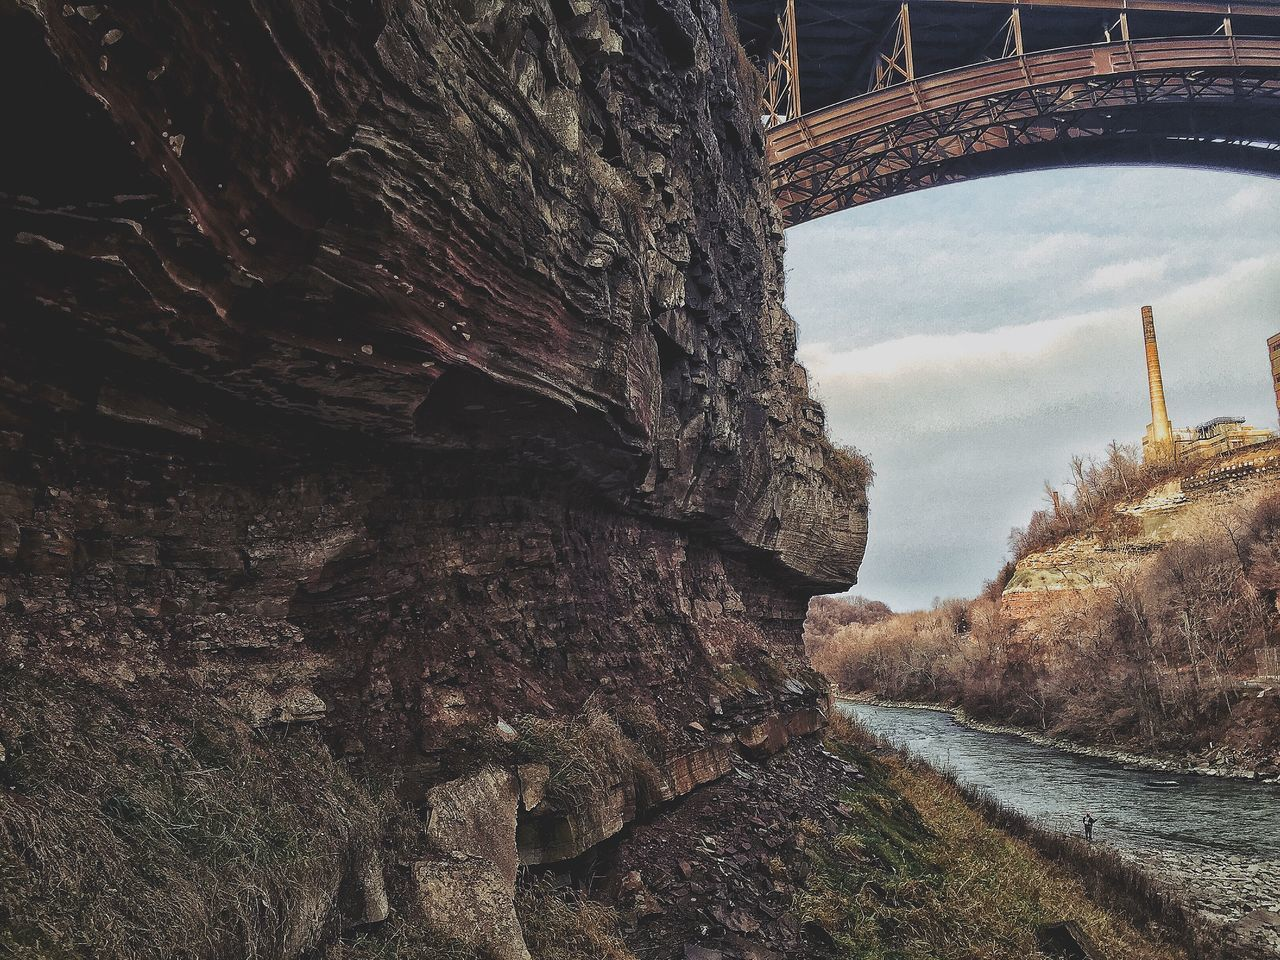 -GENESEE CLIFFSIDE- Naturelovers Rochesterny  EyeEm Nature Lover Explore Nature_collection Nature Photography Nature Rocks Rochester, NY Explorer Natgeo Eye Em Nature Lover Nature On Your Doorstep Hiking Natgeocreative Natgeotravel Explorenature Outdoors